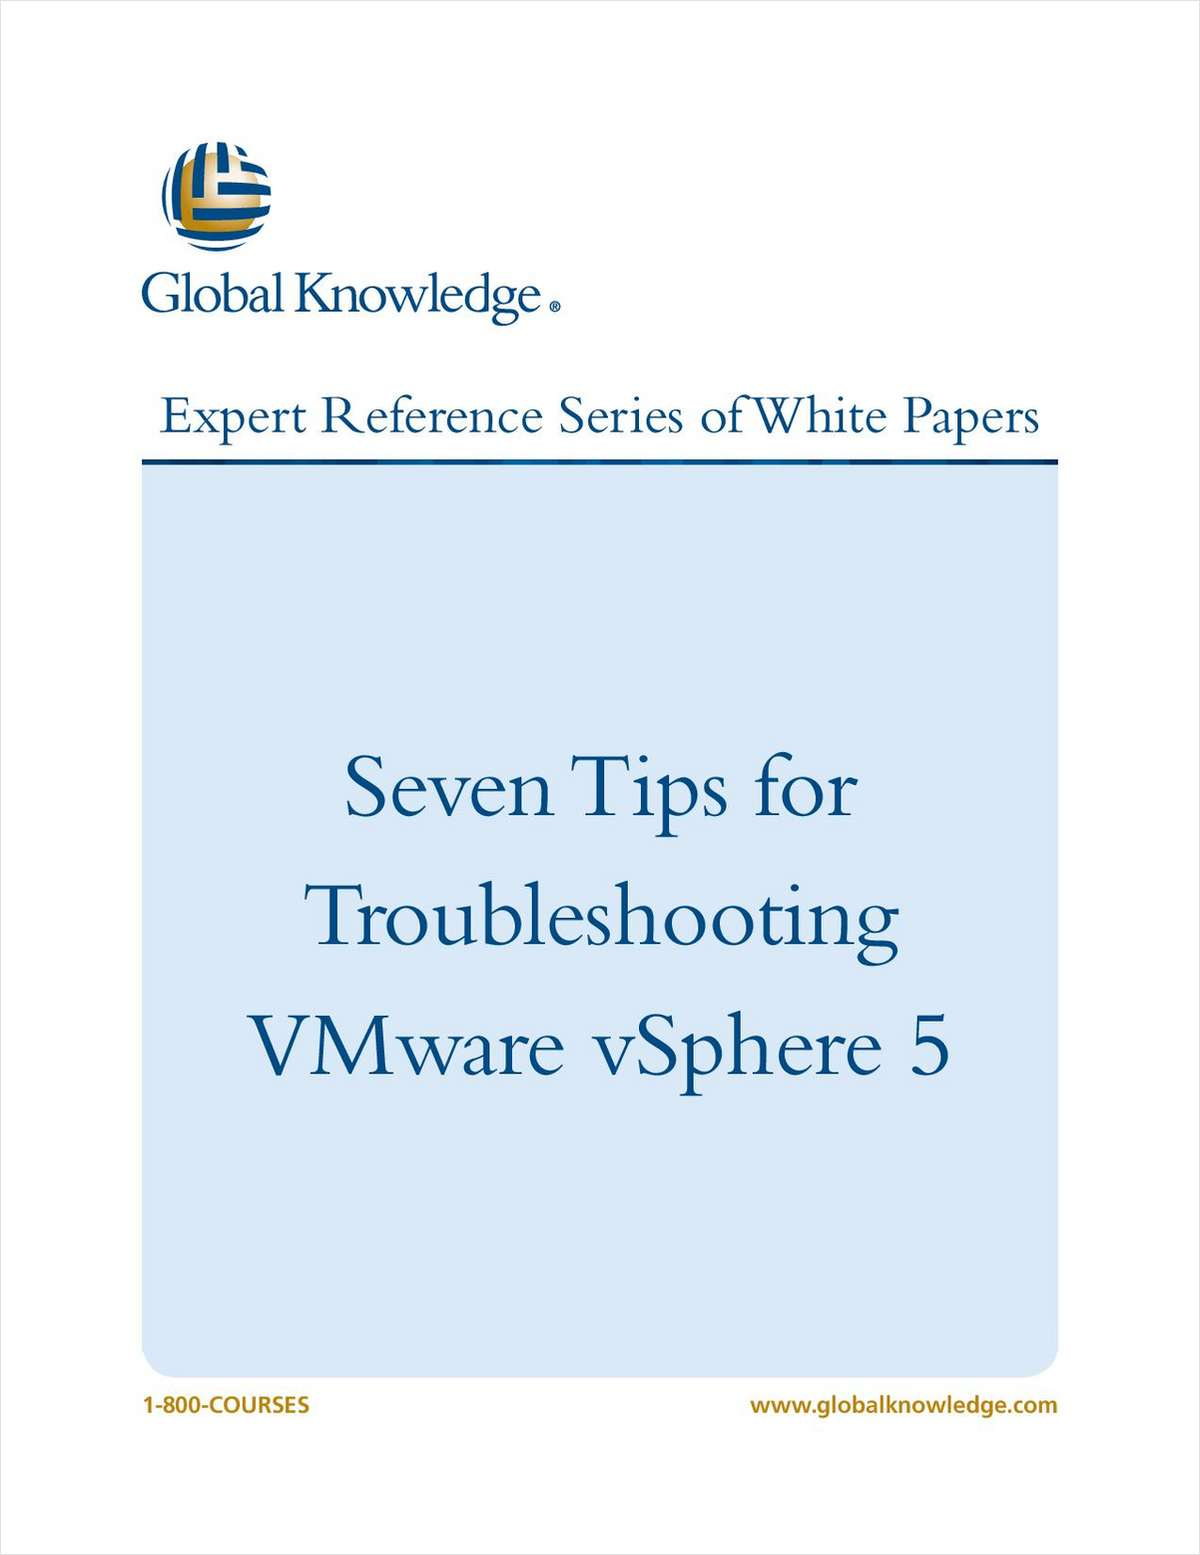 Seven Tips for Troubleshooting VMware vSphere 5